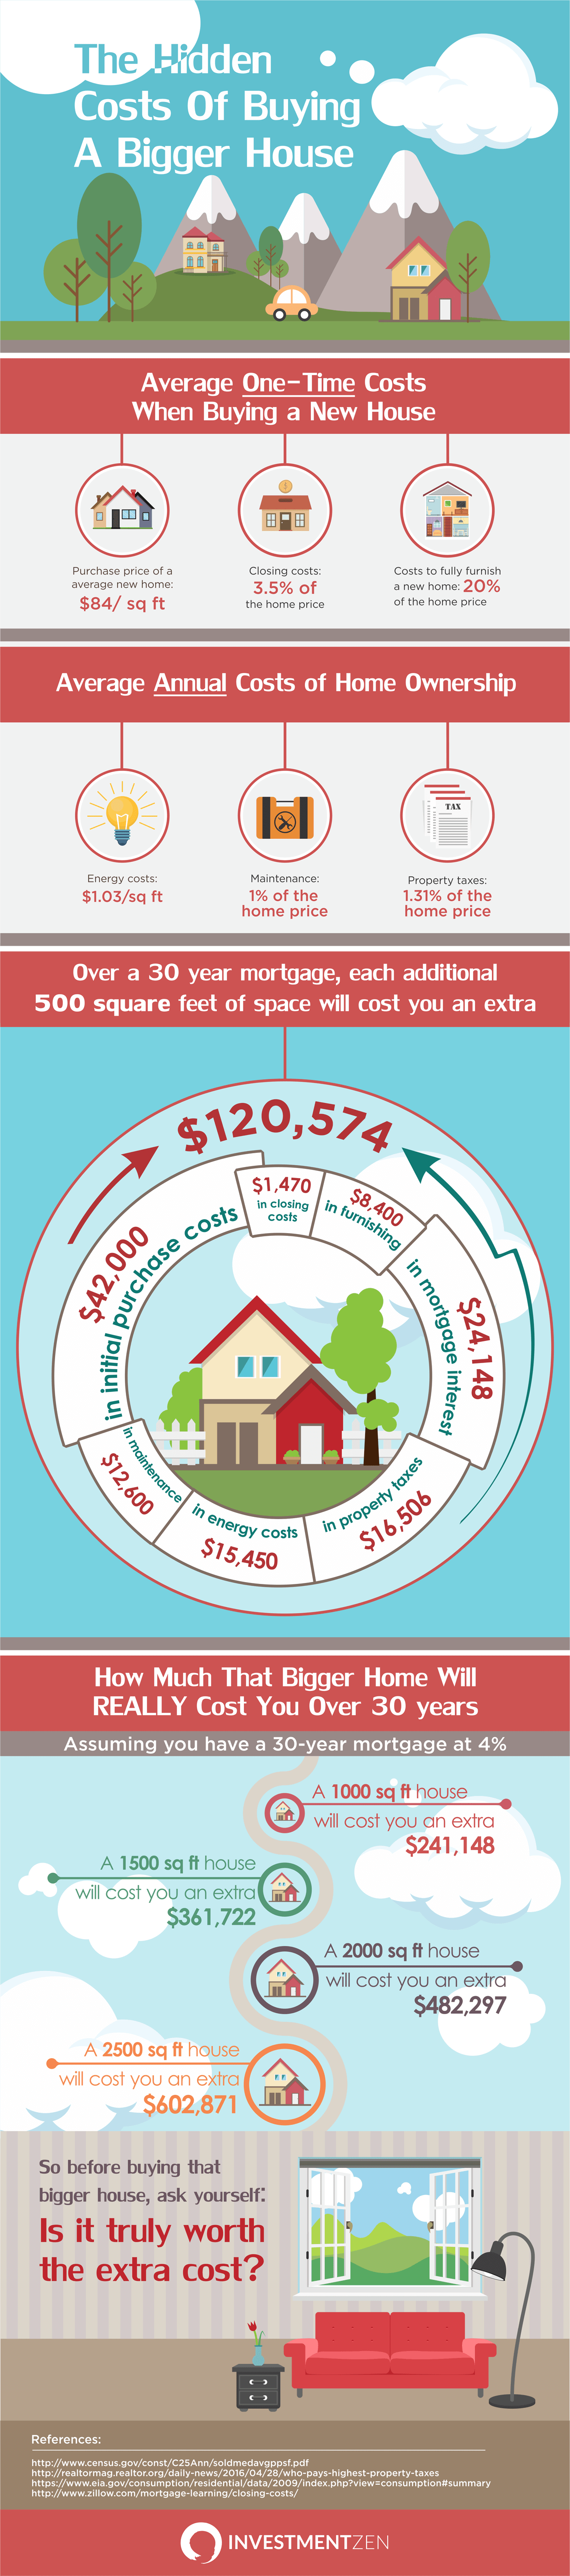 The Hidden Costs of Buying A Bigger House